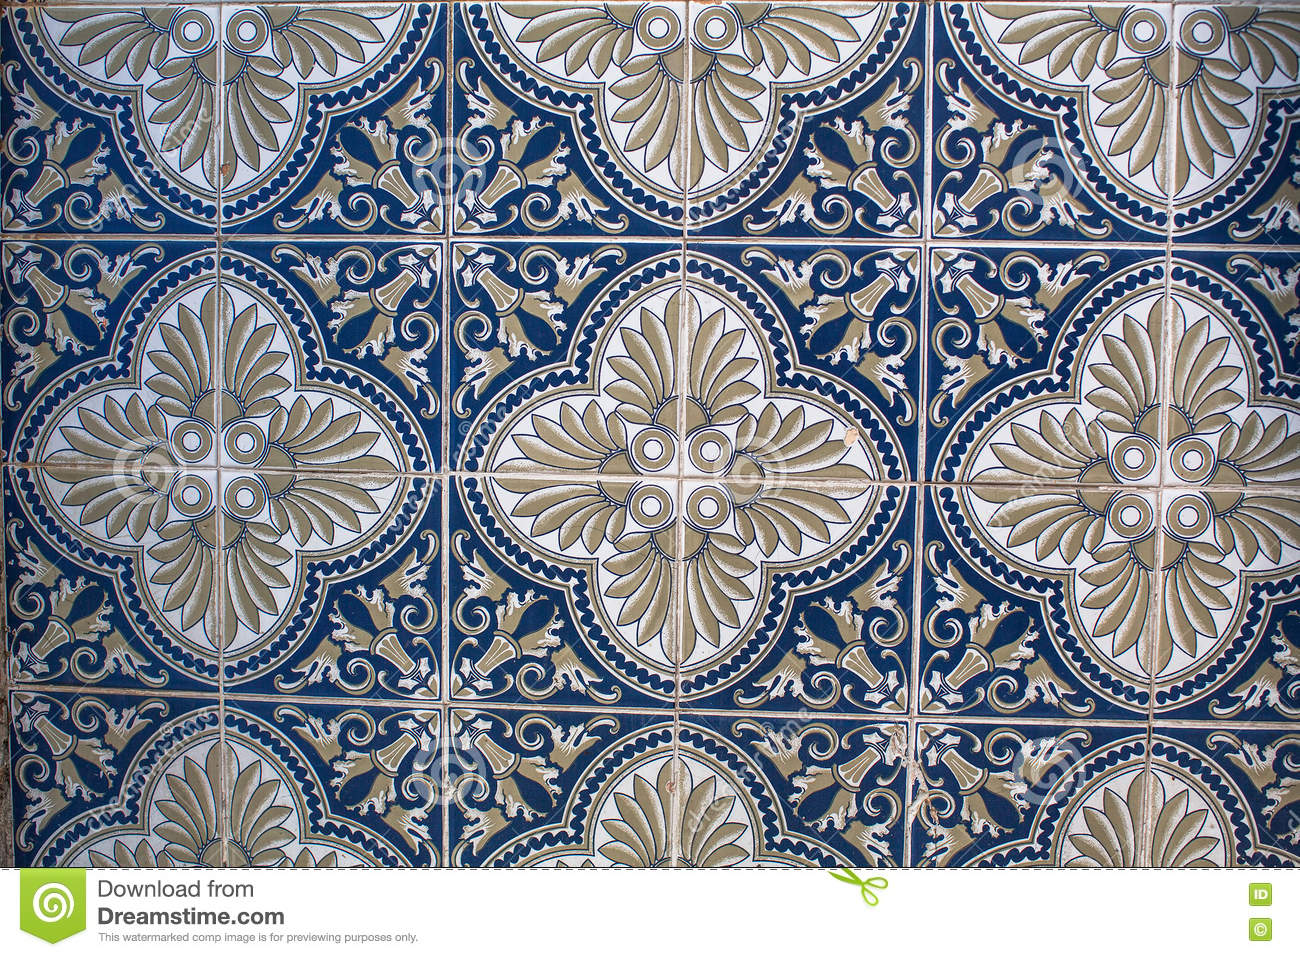 fragment von portugiesischen traditionellen fliesen azulejo mit muster in altem porto stockfoto. Black Bedroom Furniture Sets. Home Design Ideas